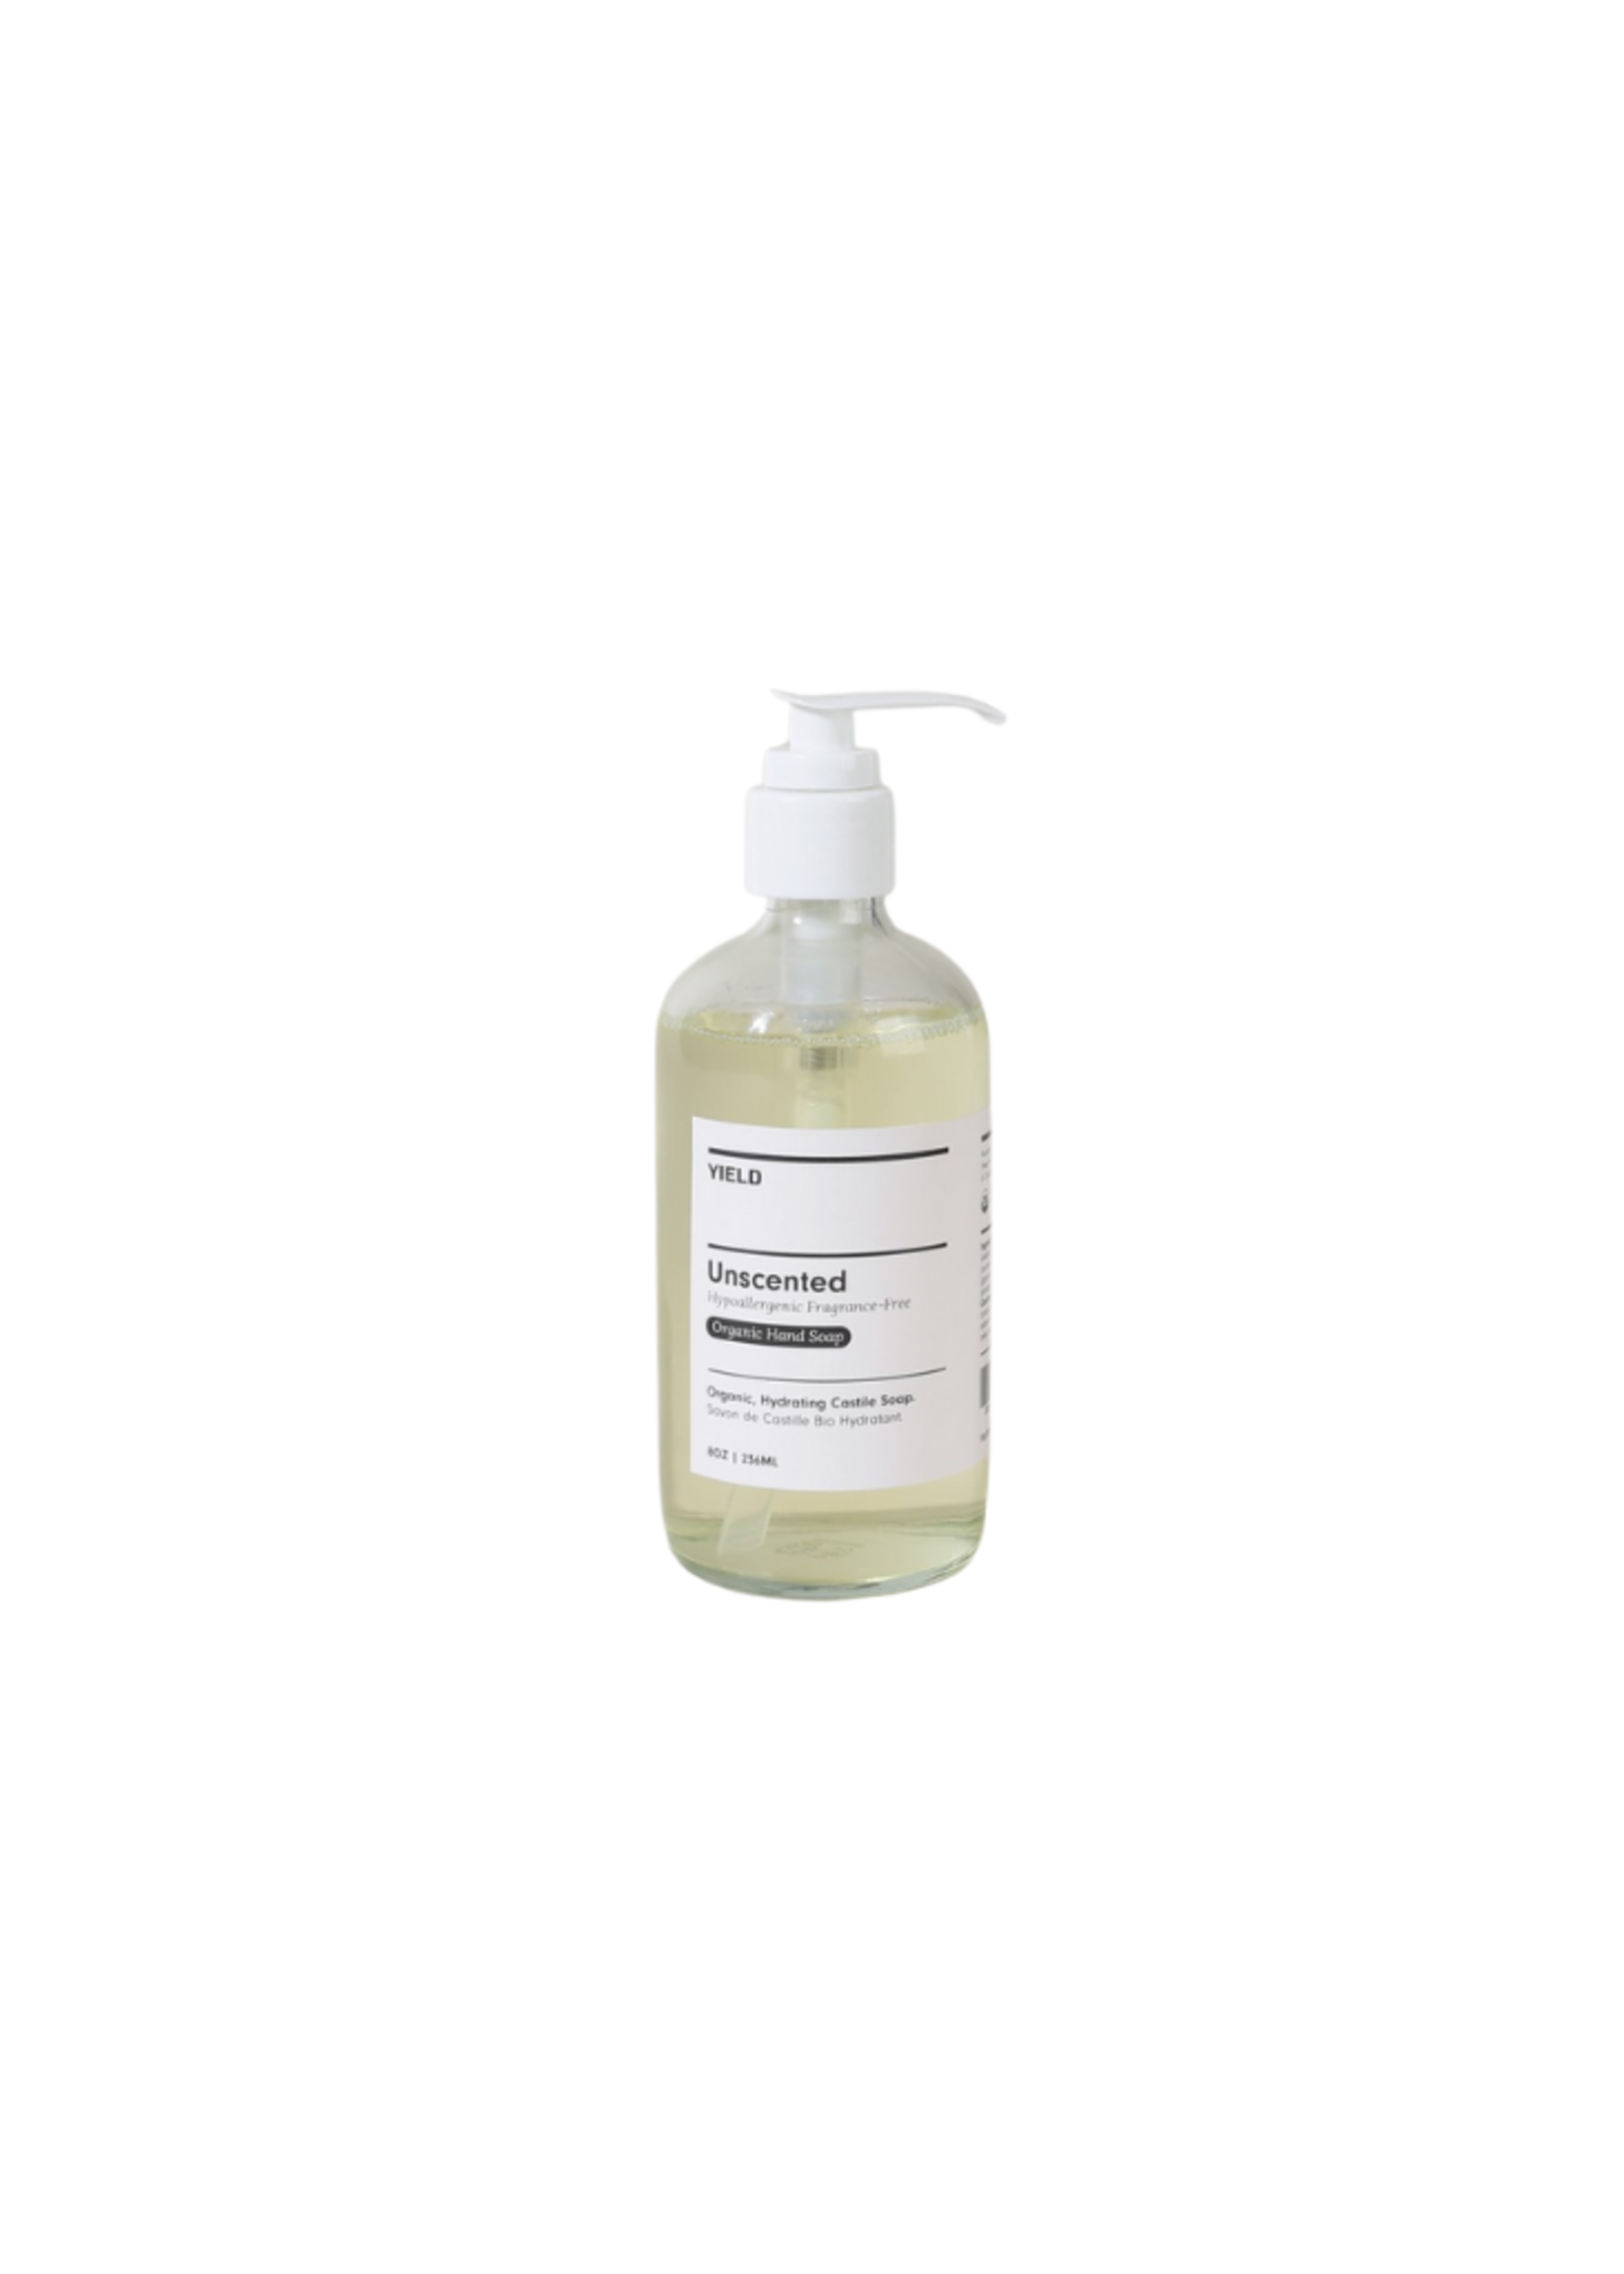 Yield Design Co Unscented Organic Hand Soap - 8oz Bottle